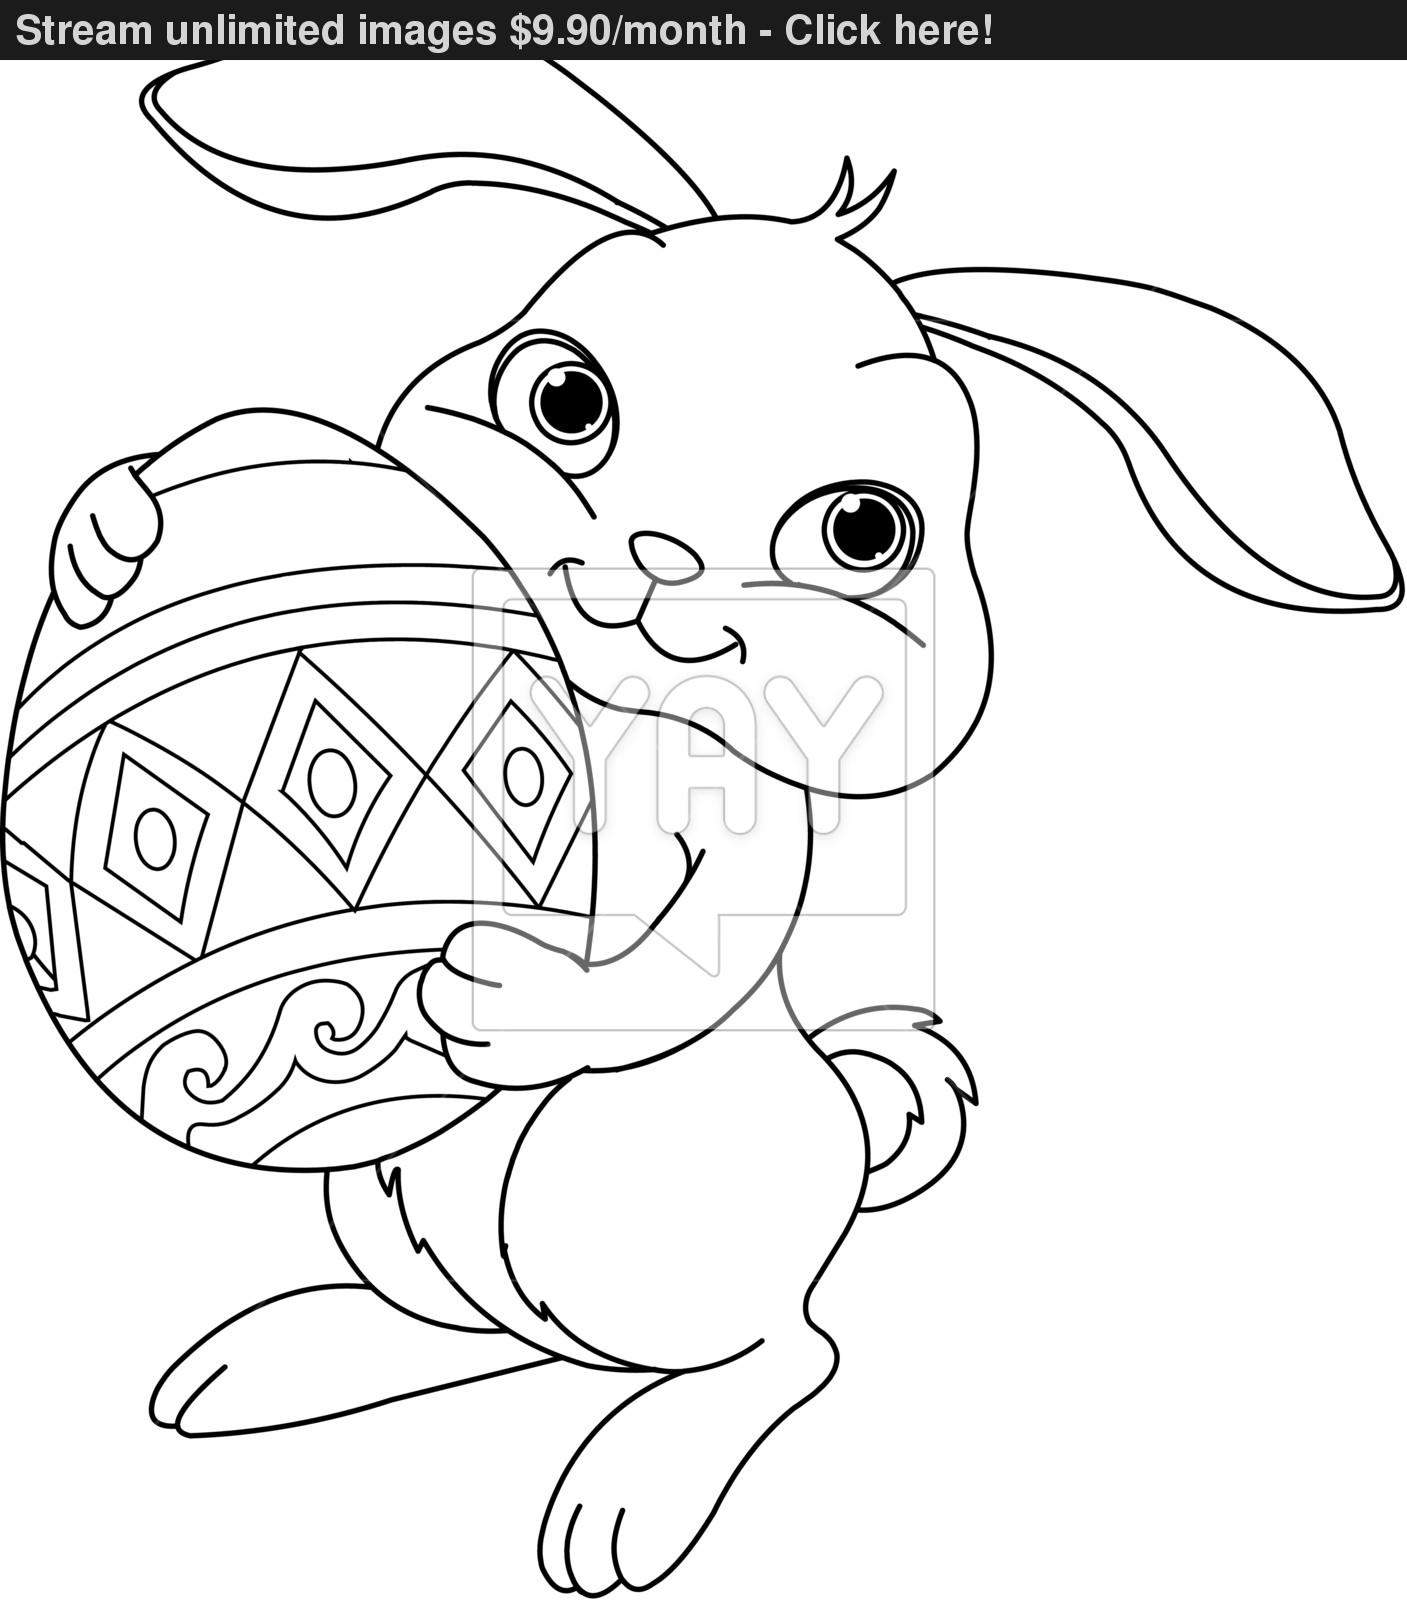 1407x1600 Easter Bunny Coloring Pages Printable To Funny Print Image Kids